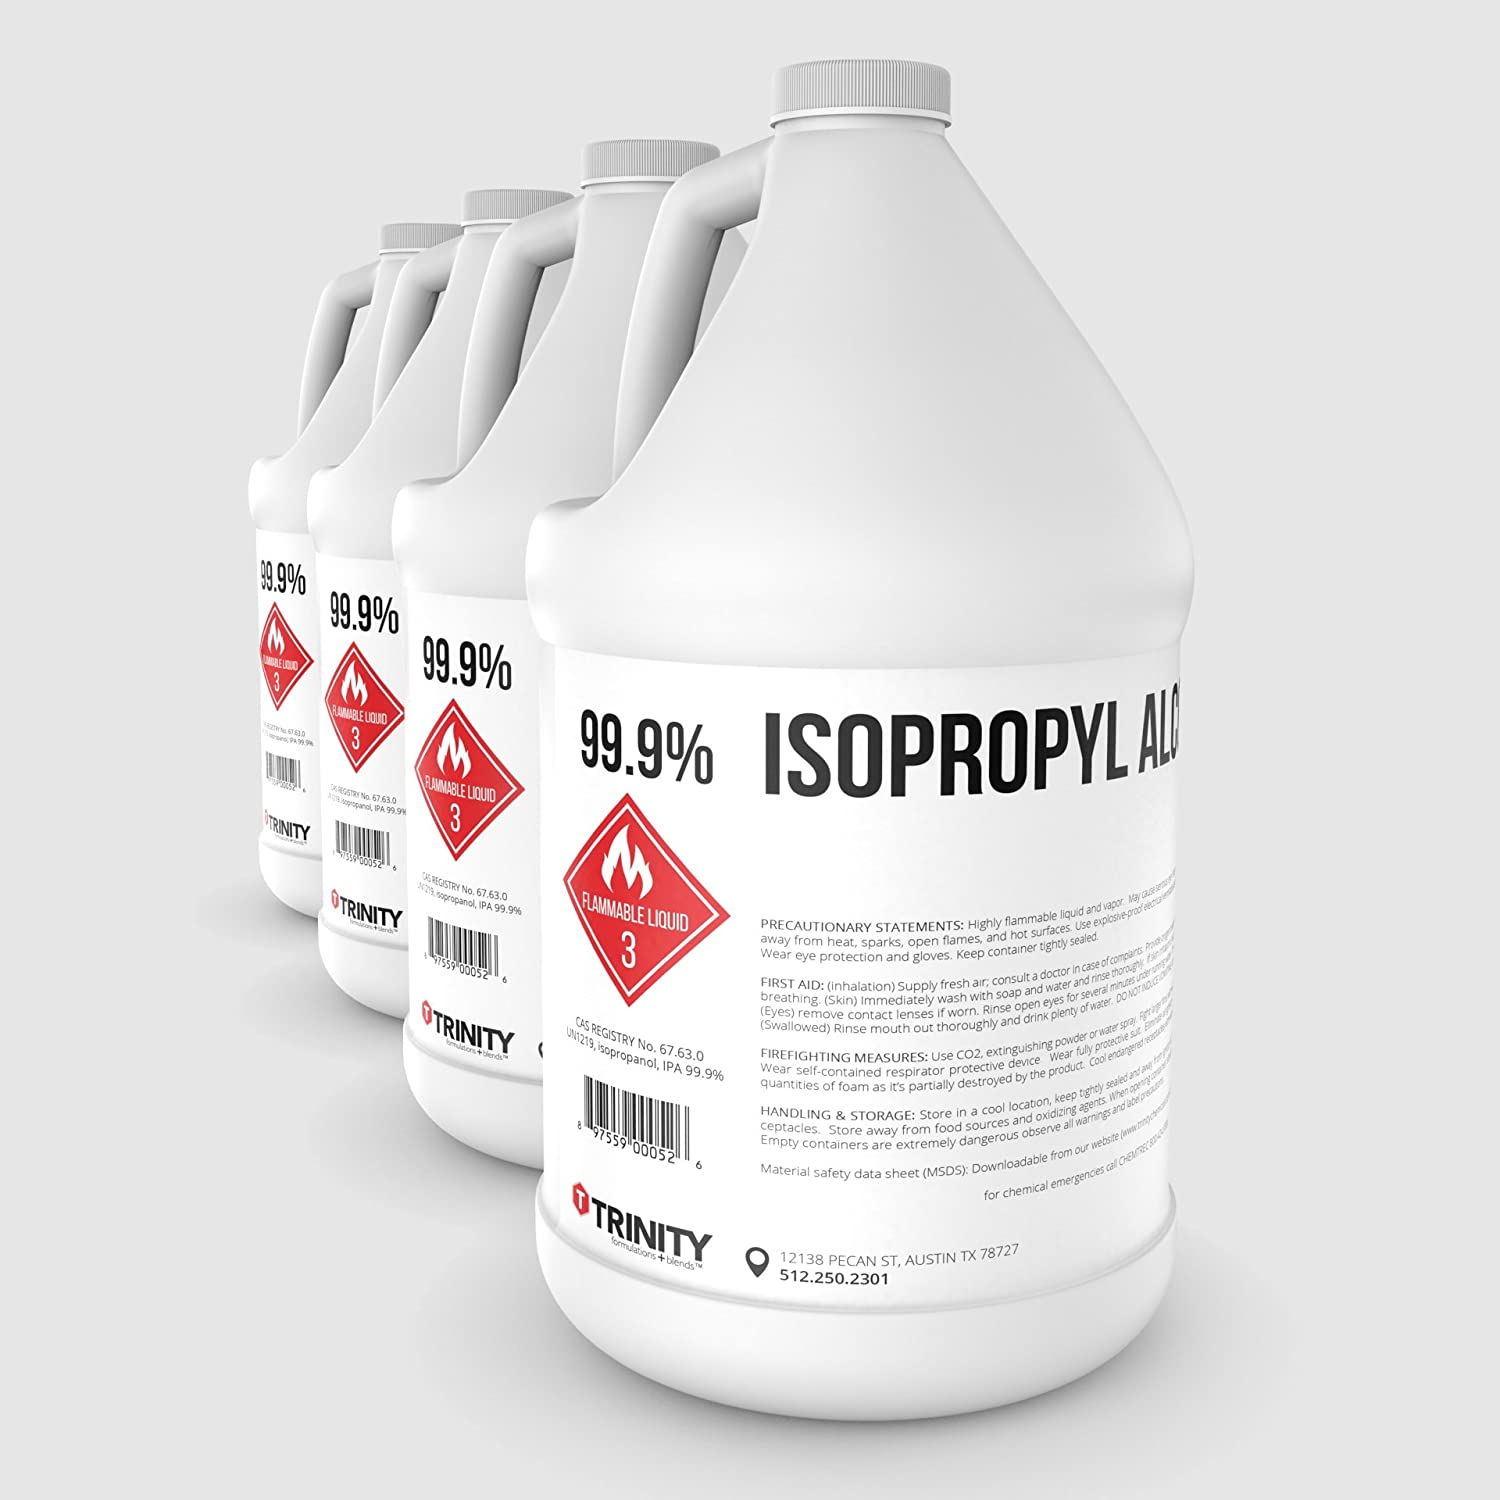 Isopropyl Alcohol 99 5% and Isopropyl Alcohol 99 9% - A Laboratory-Grade  Superior Solvent + Anhydrous Liquid Cleaner | Available in 1 Quart, 16